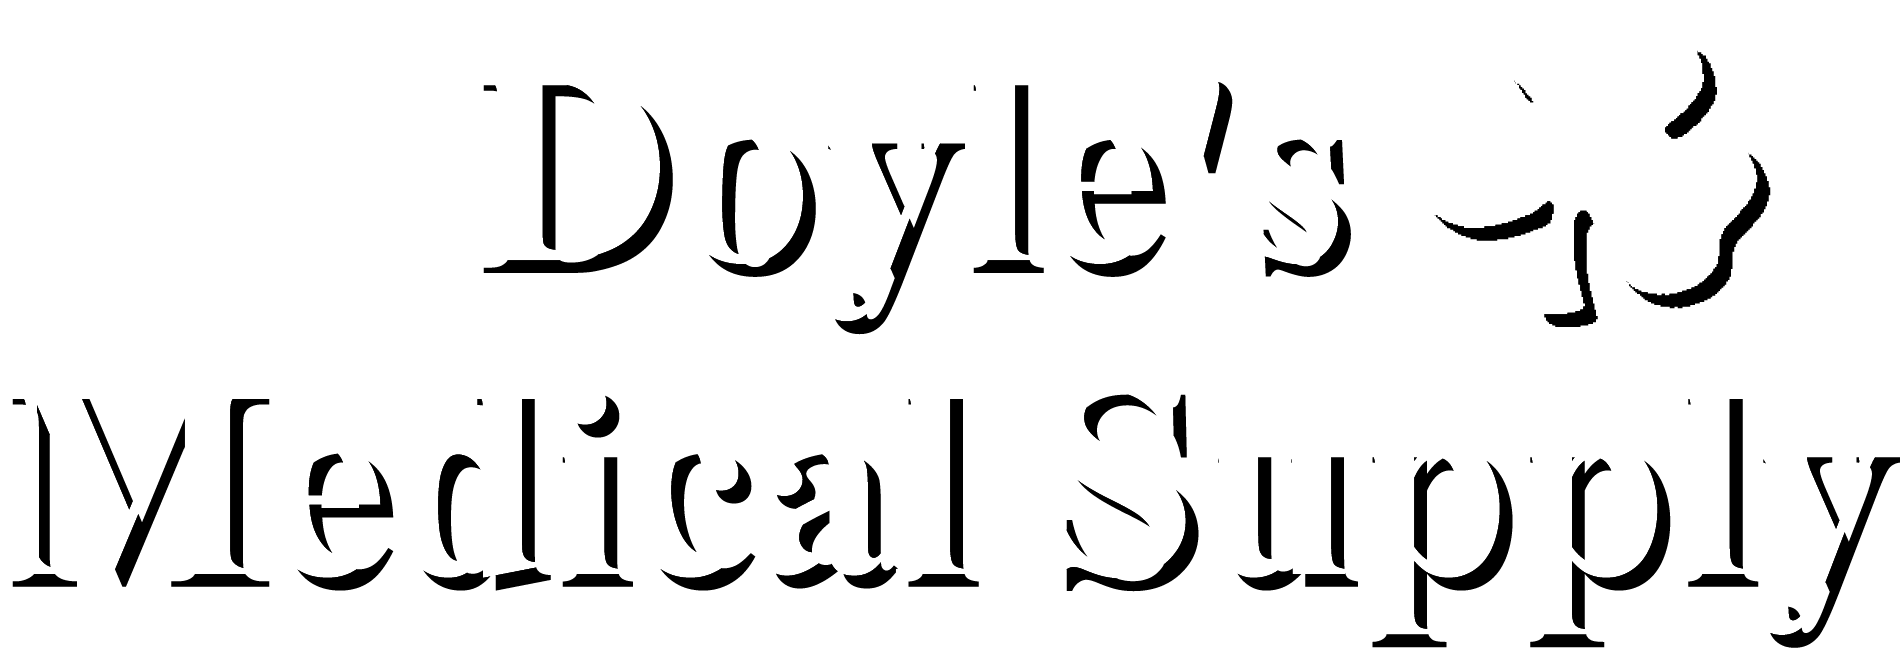 Doyle's Medical Supply